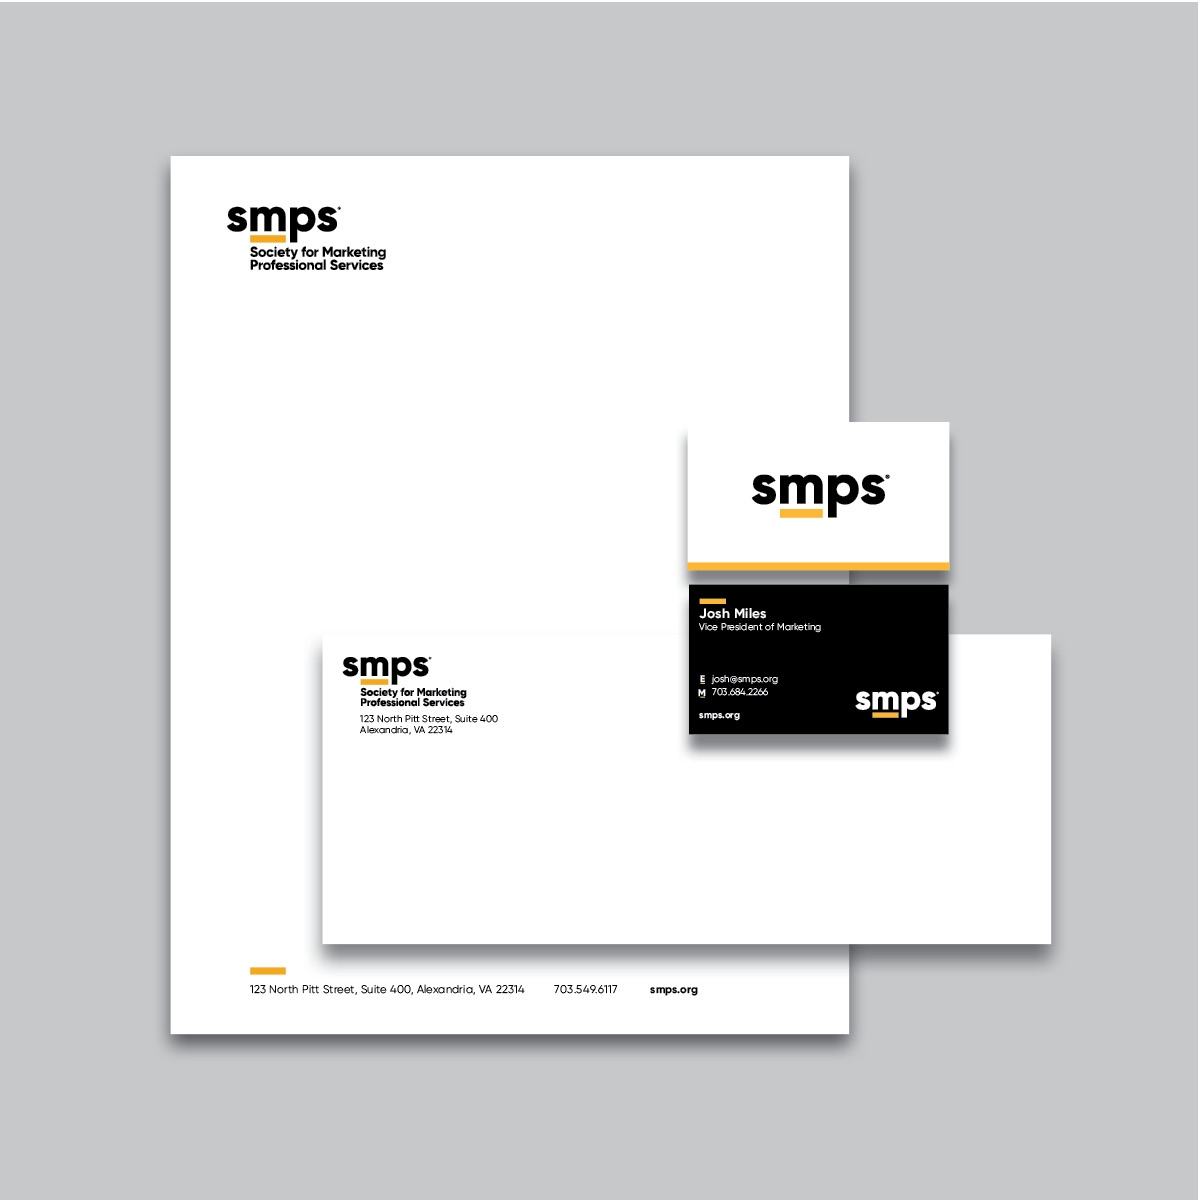 SMPS Stationery